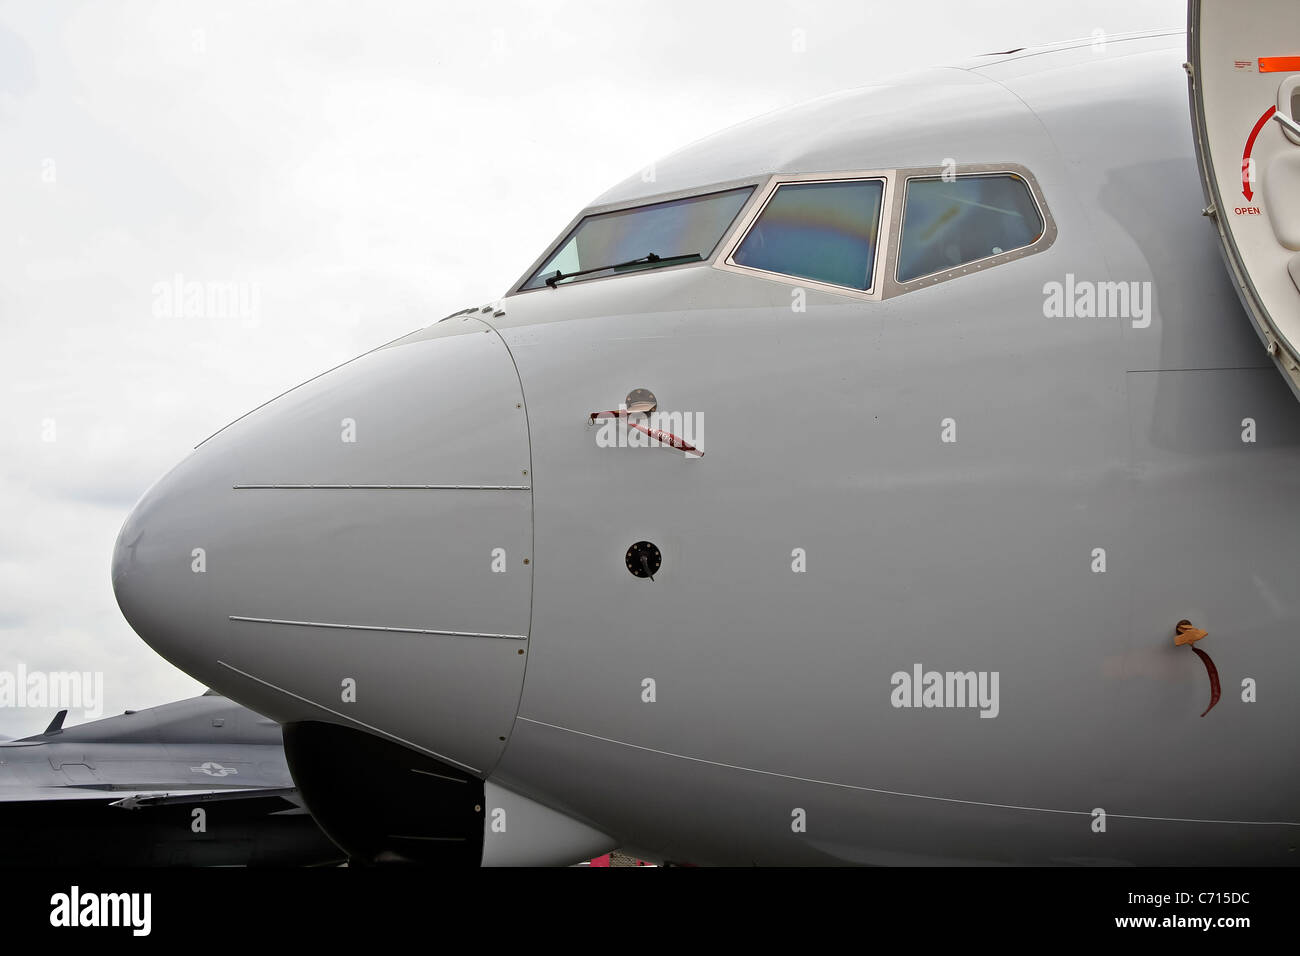 Close up of aircraft nose or cockpit - Stock Image